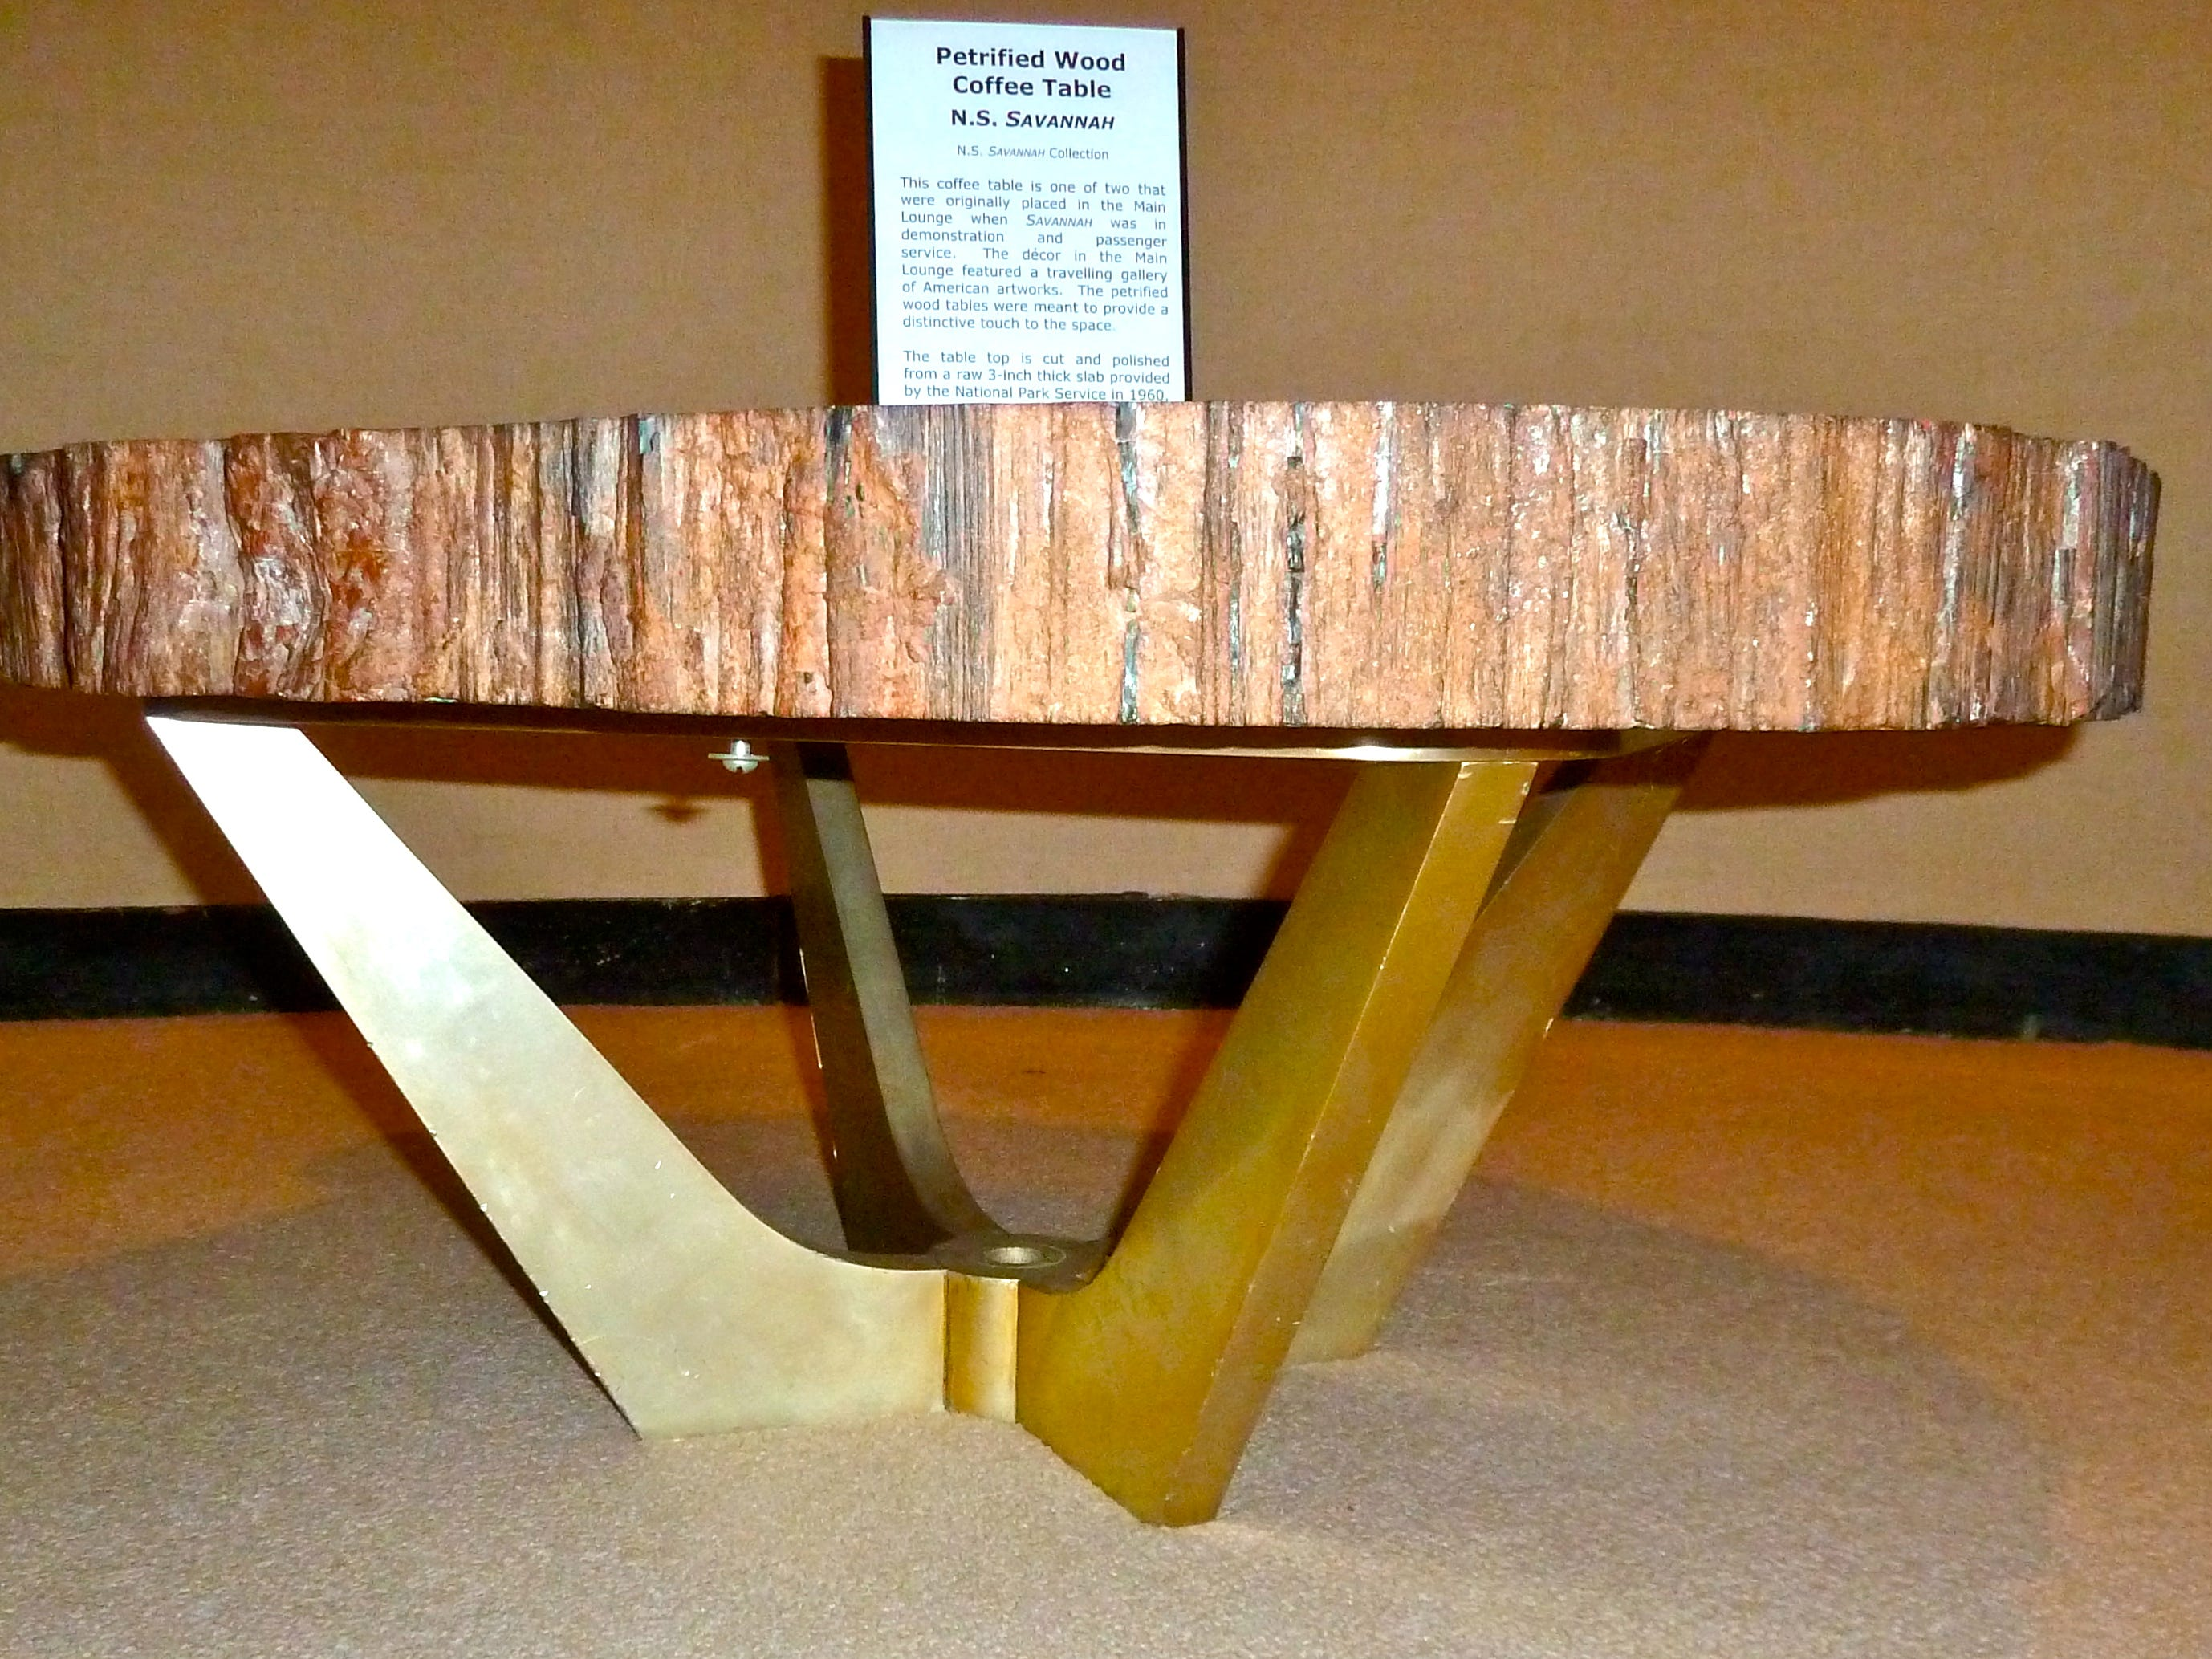 A pair of petrified wood-topped coffee tables were selected for the Lounge by the National Park Service in 1958. One is now preserved in the Smithsonian.